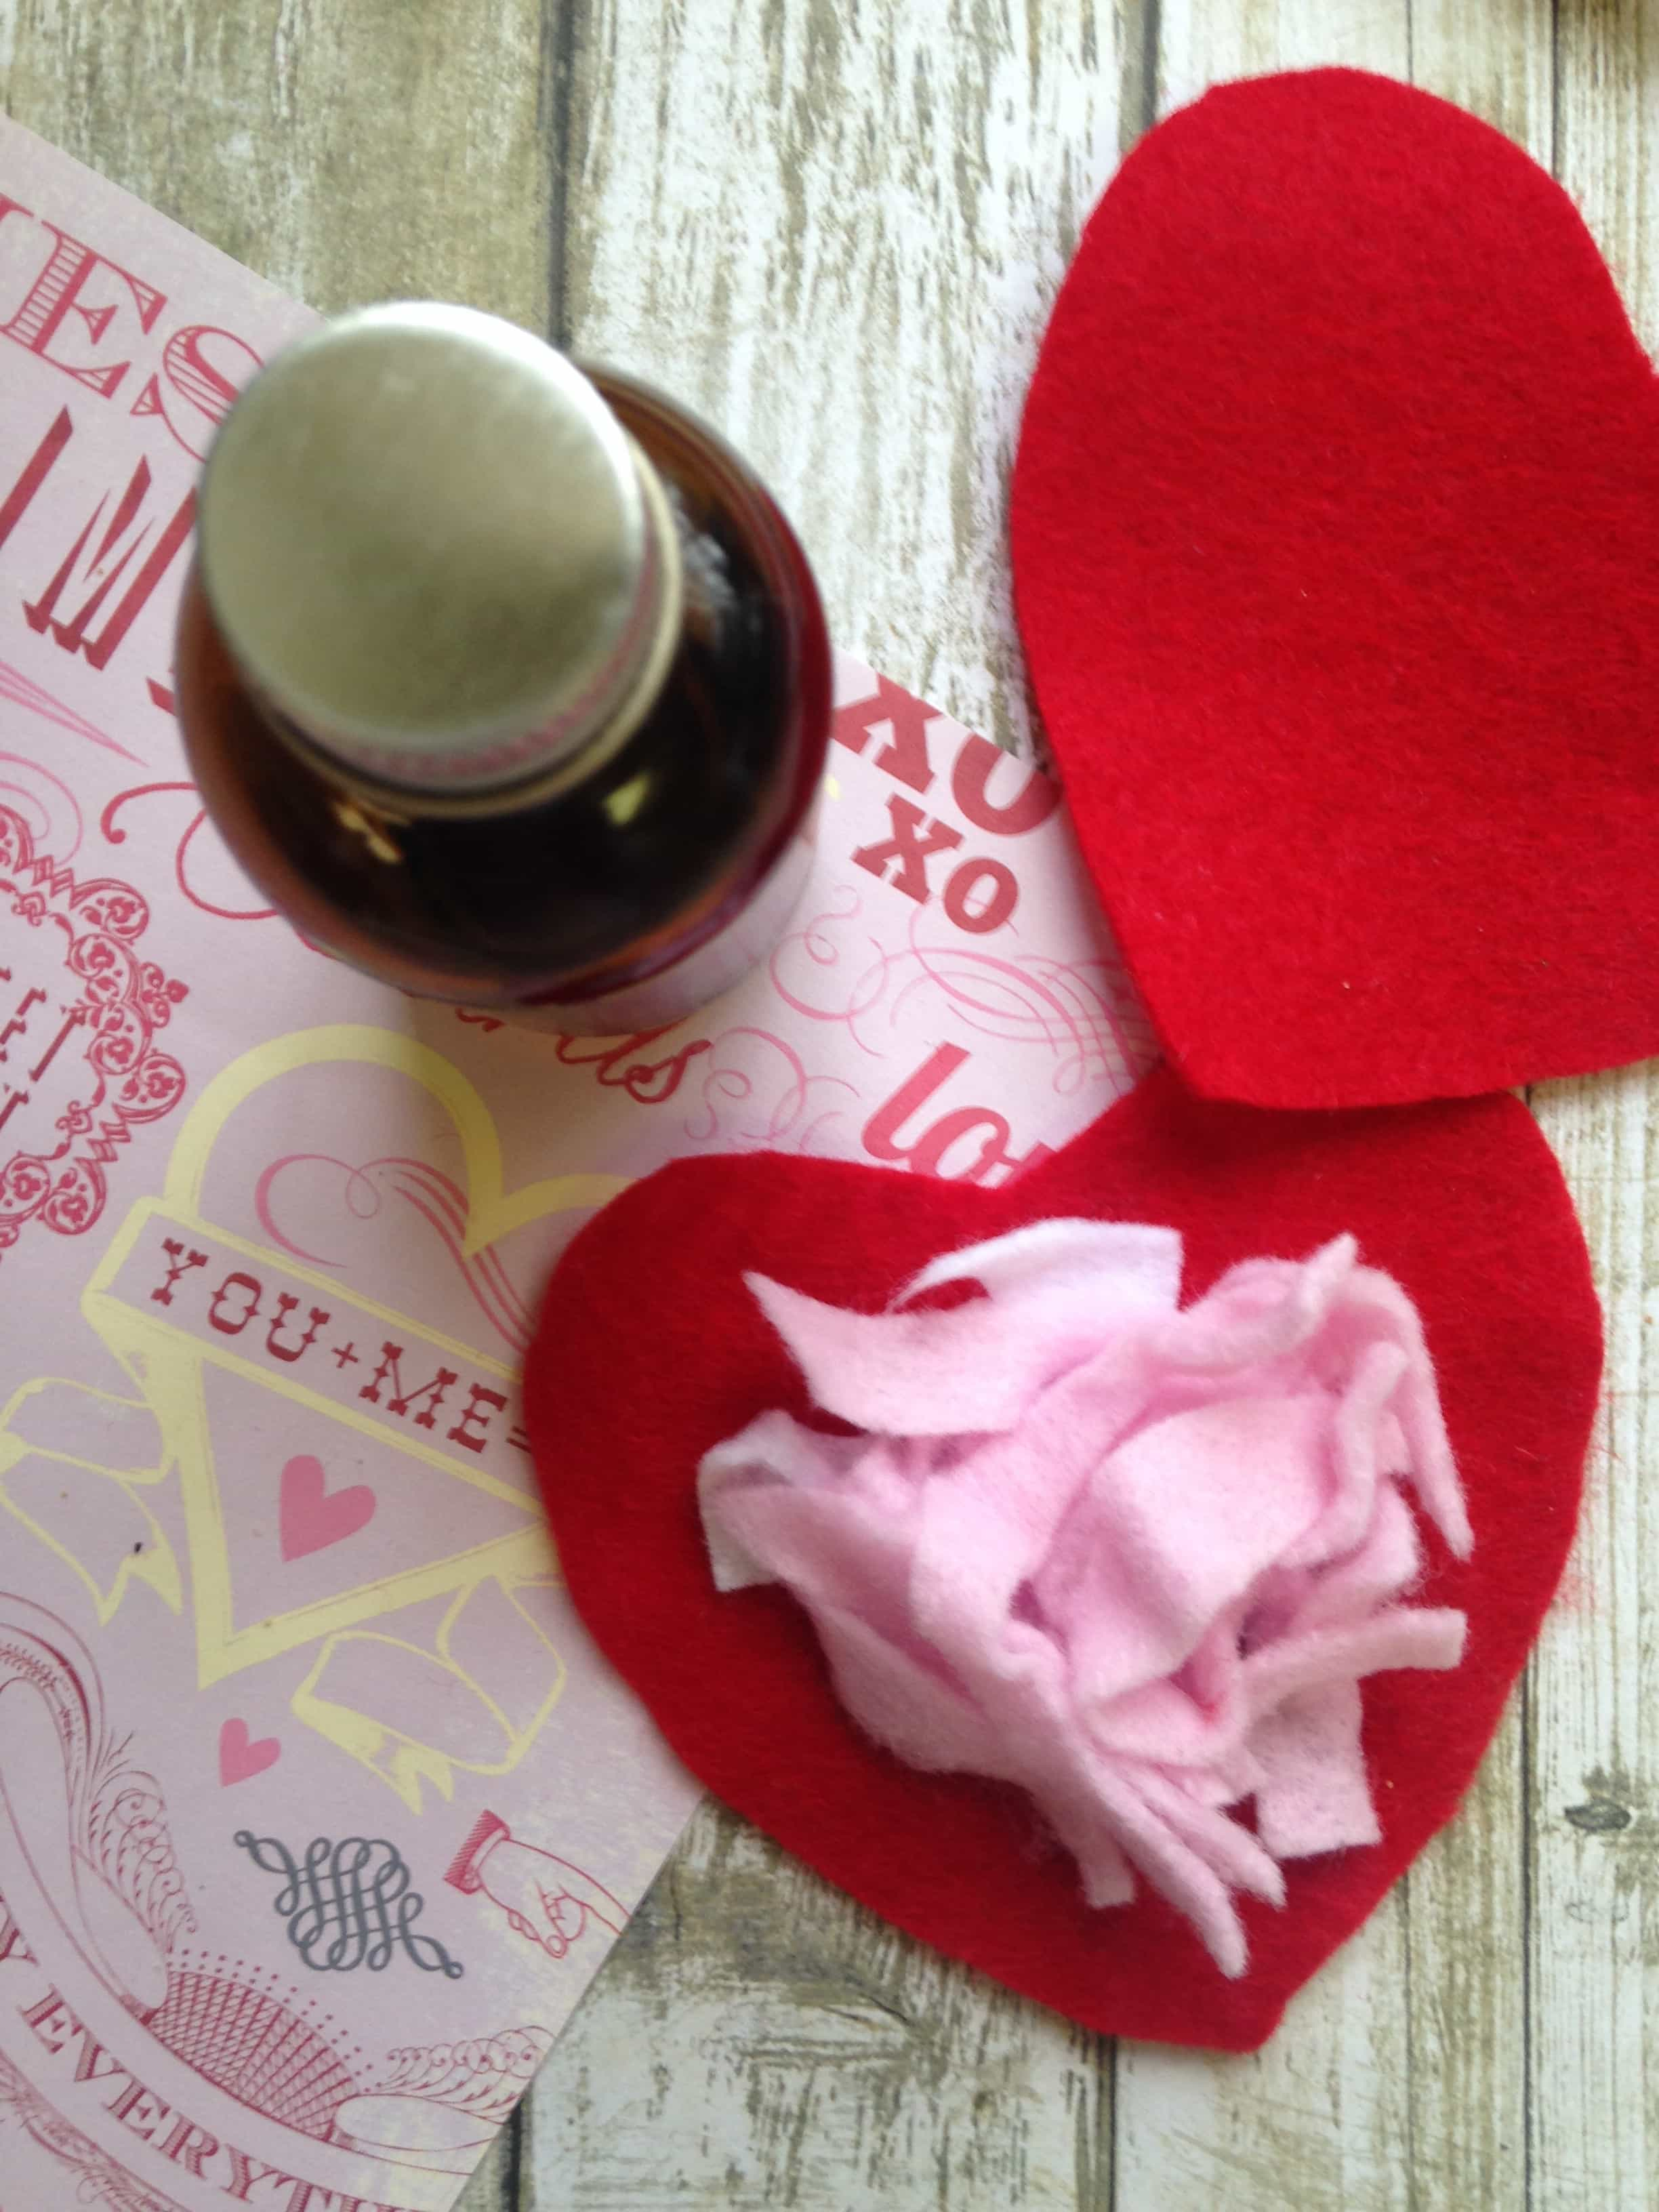 Stuff the heart with felt scented with essential oils